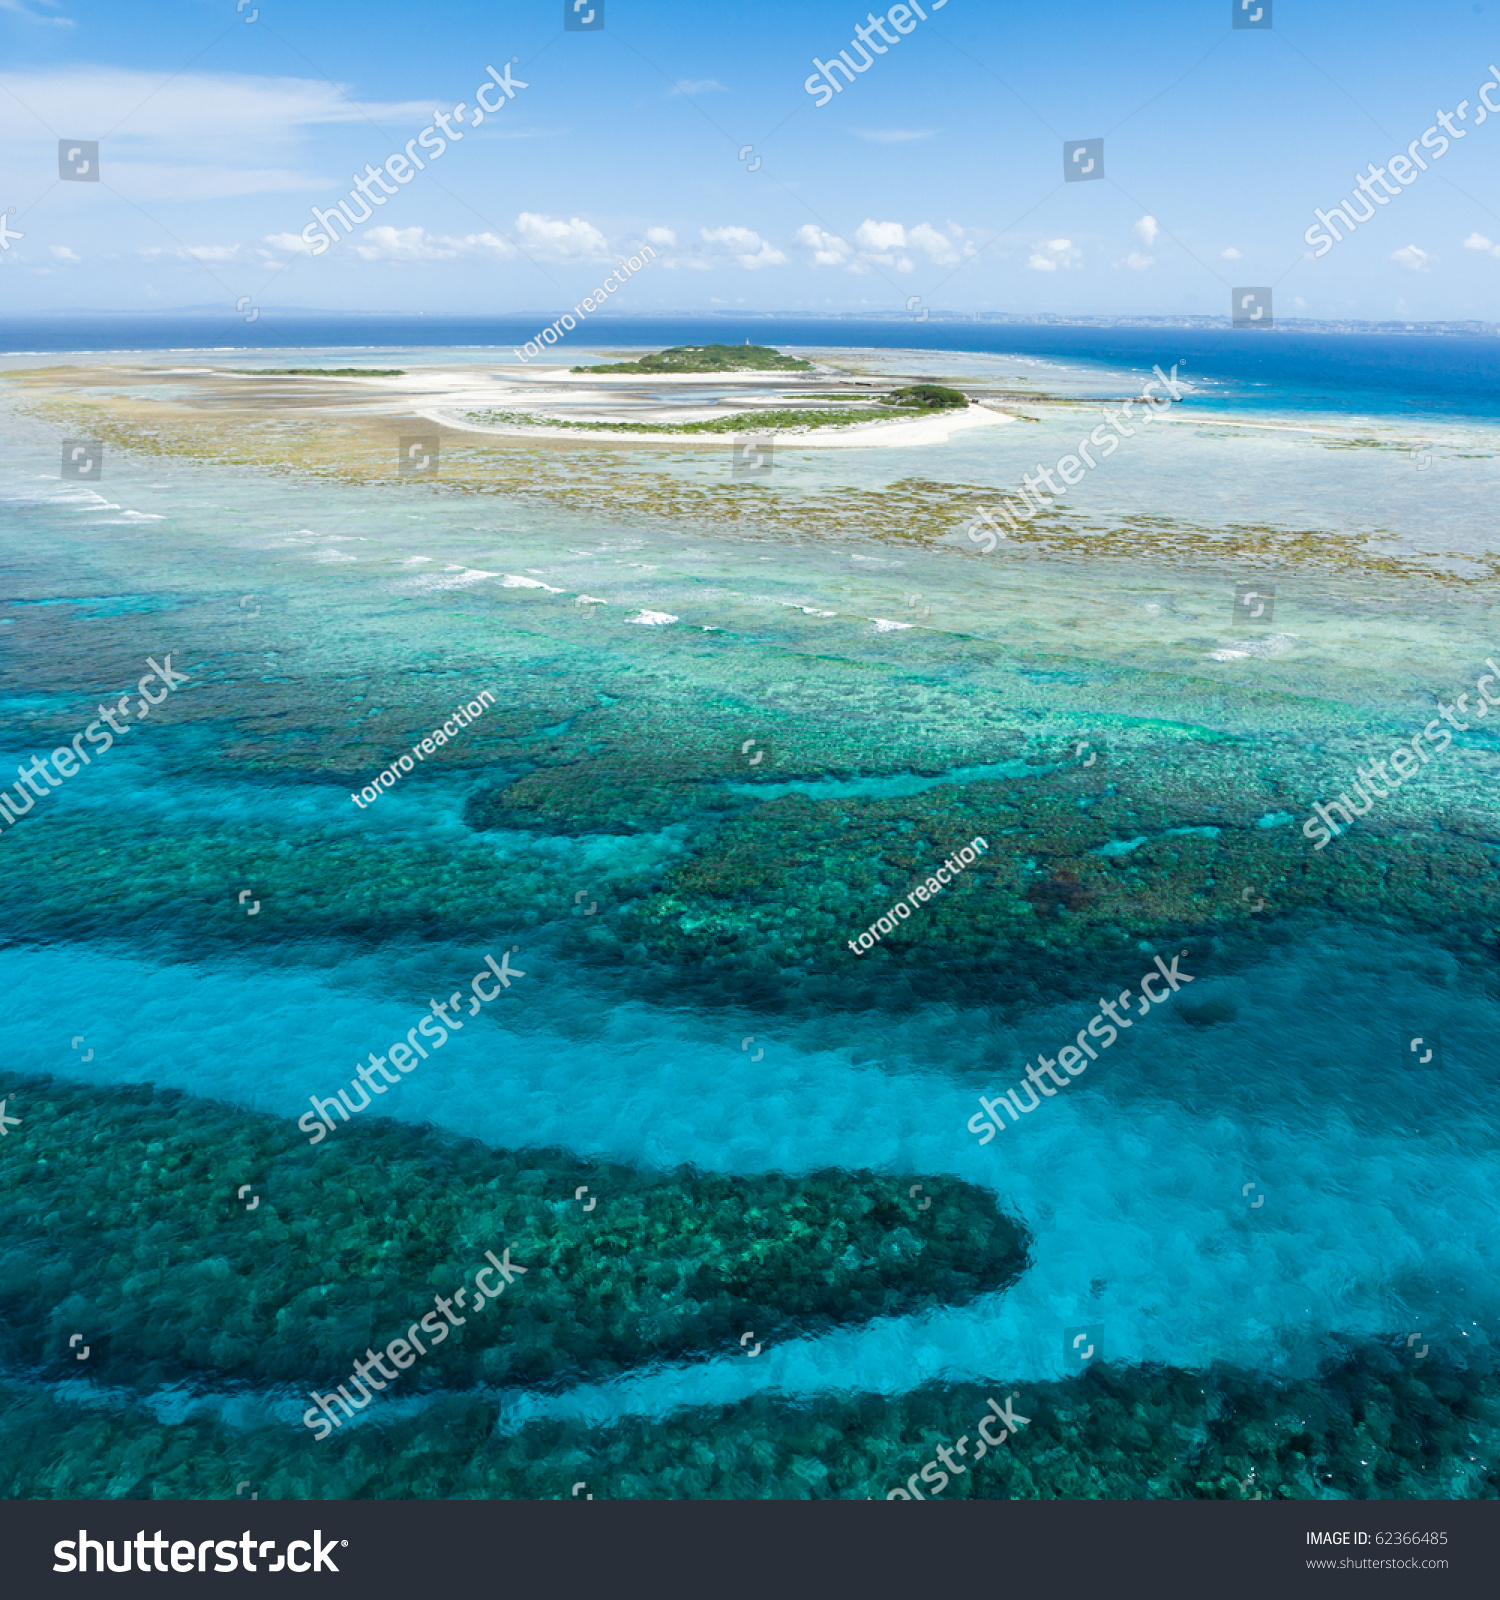 Aerial View Of A Deserted Japanese Tropical Island On The